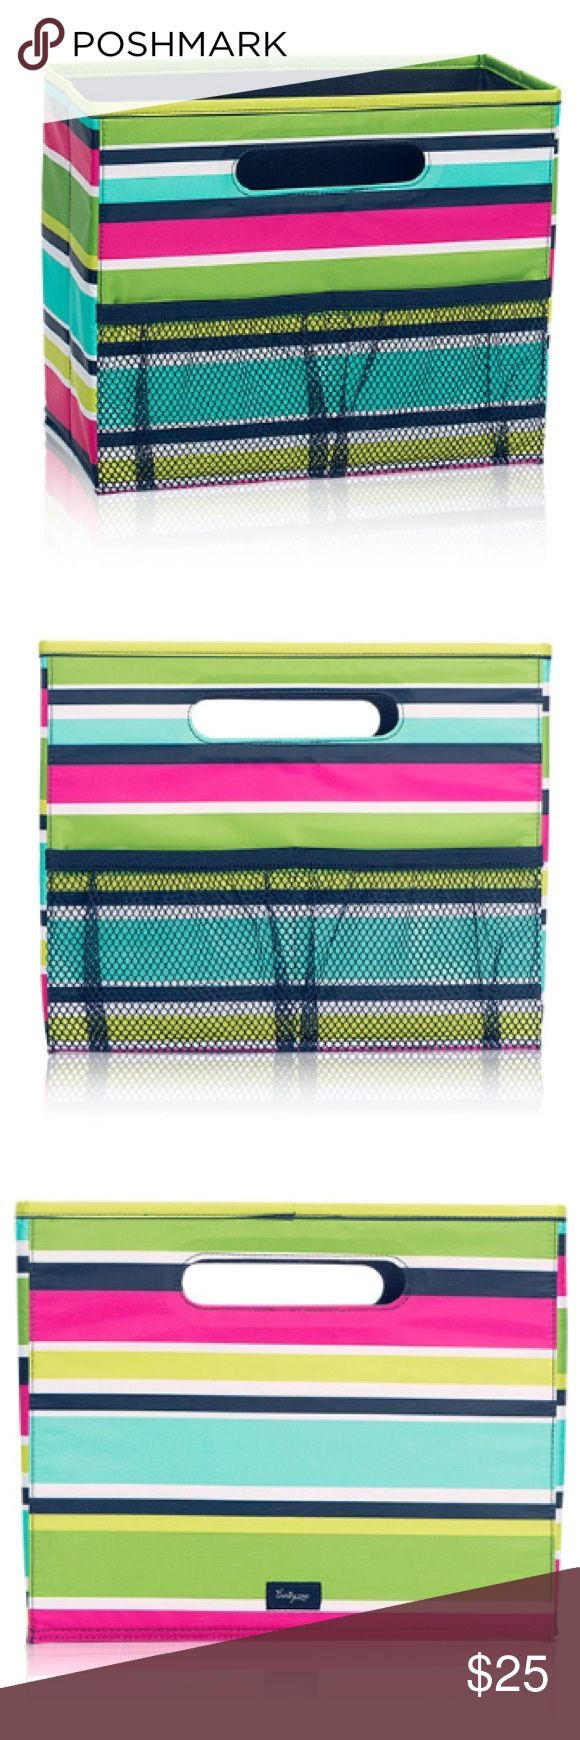 🆕Listing! Thirty-One Fold N' File Organizer Stay organized at home or in the office with the Fold N' File. Perfectly sized to hold hanging file folders, it's a great storage option for any papers you need to have quick access to. Easy-carry cut-out handles make it a breeze to take your work with you. It makes a great storage space for cleaning supplies, toys, DVDs and video games, decorations, craft supplies and more! Collapses easily when not in use. Sized to fit standard hanging file…